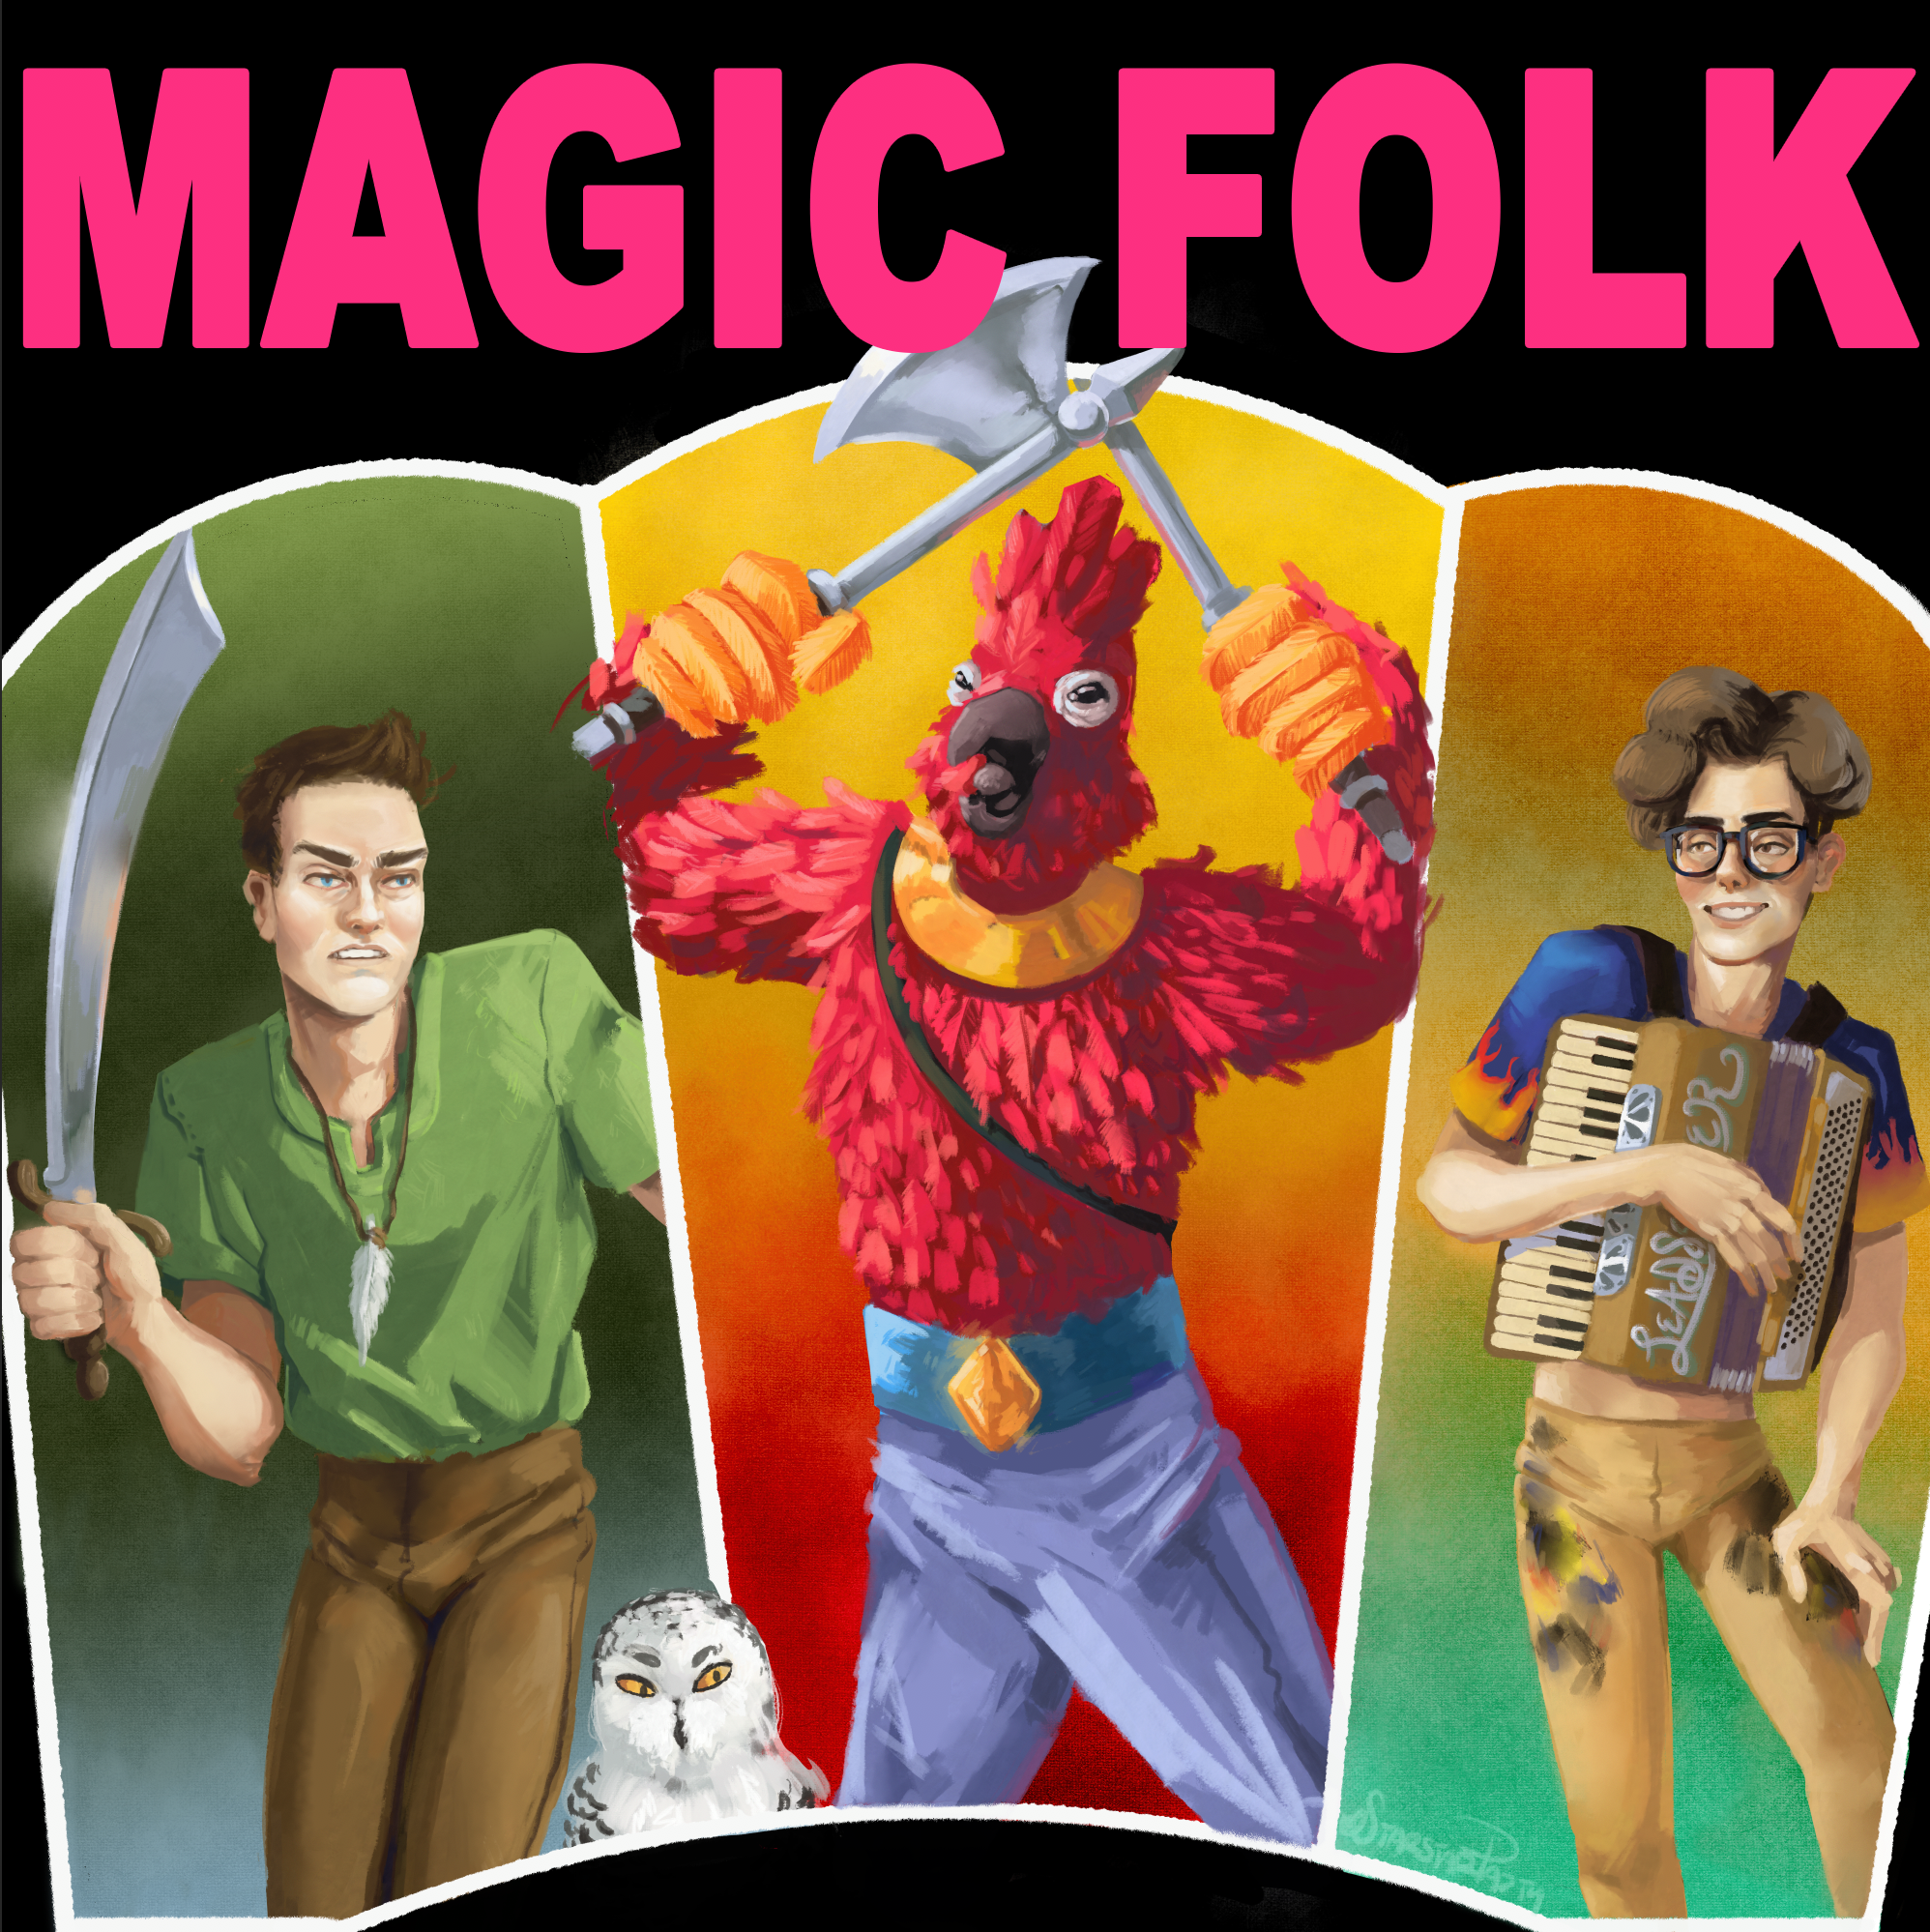 Magic Folk Podcast cover art showing Sindre with Freyja the snowy owl, Kiss, and Bernan